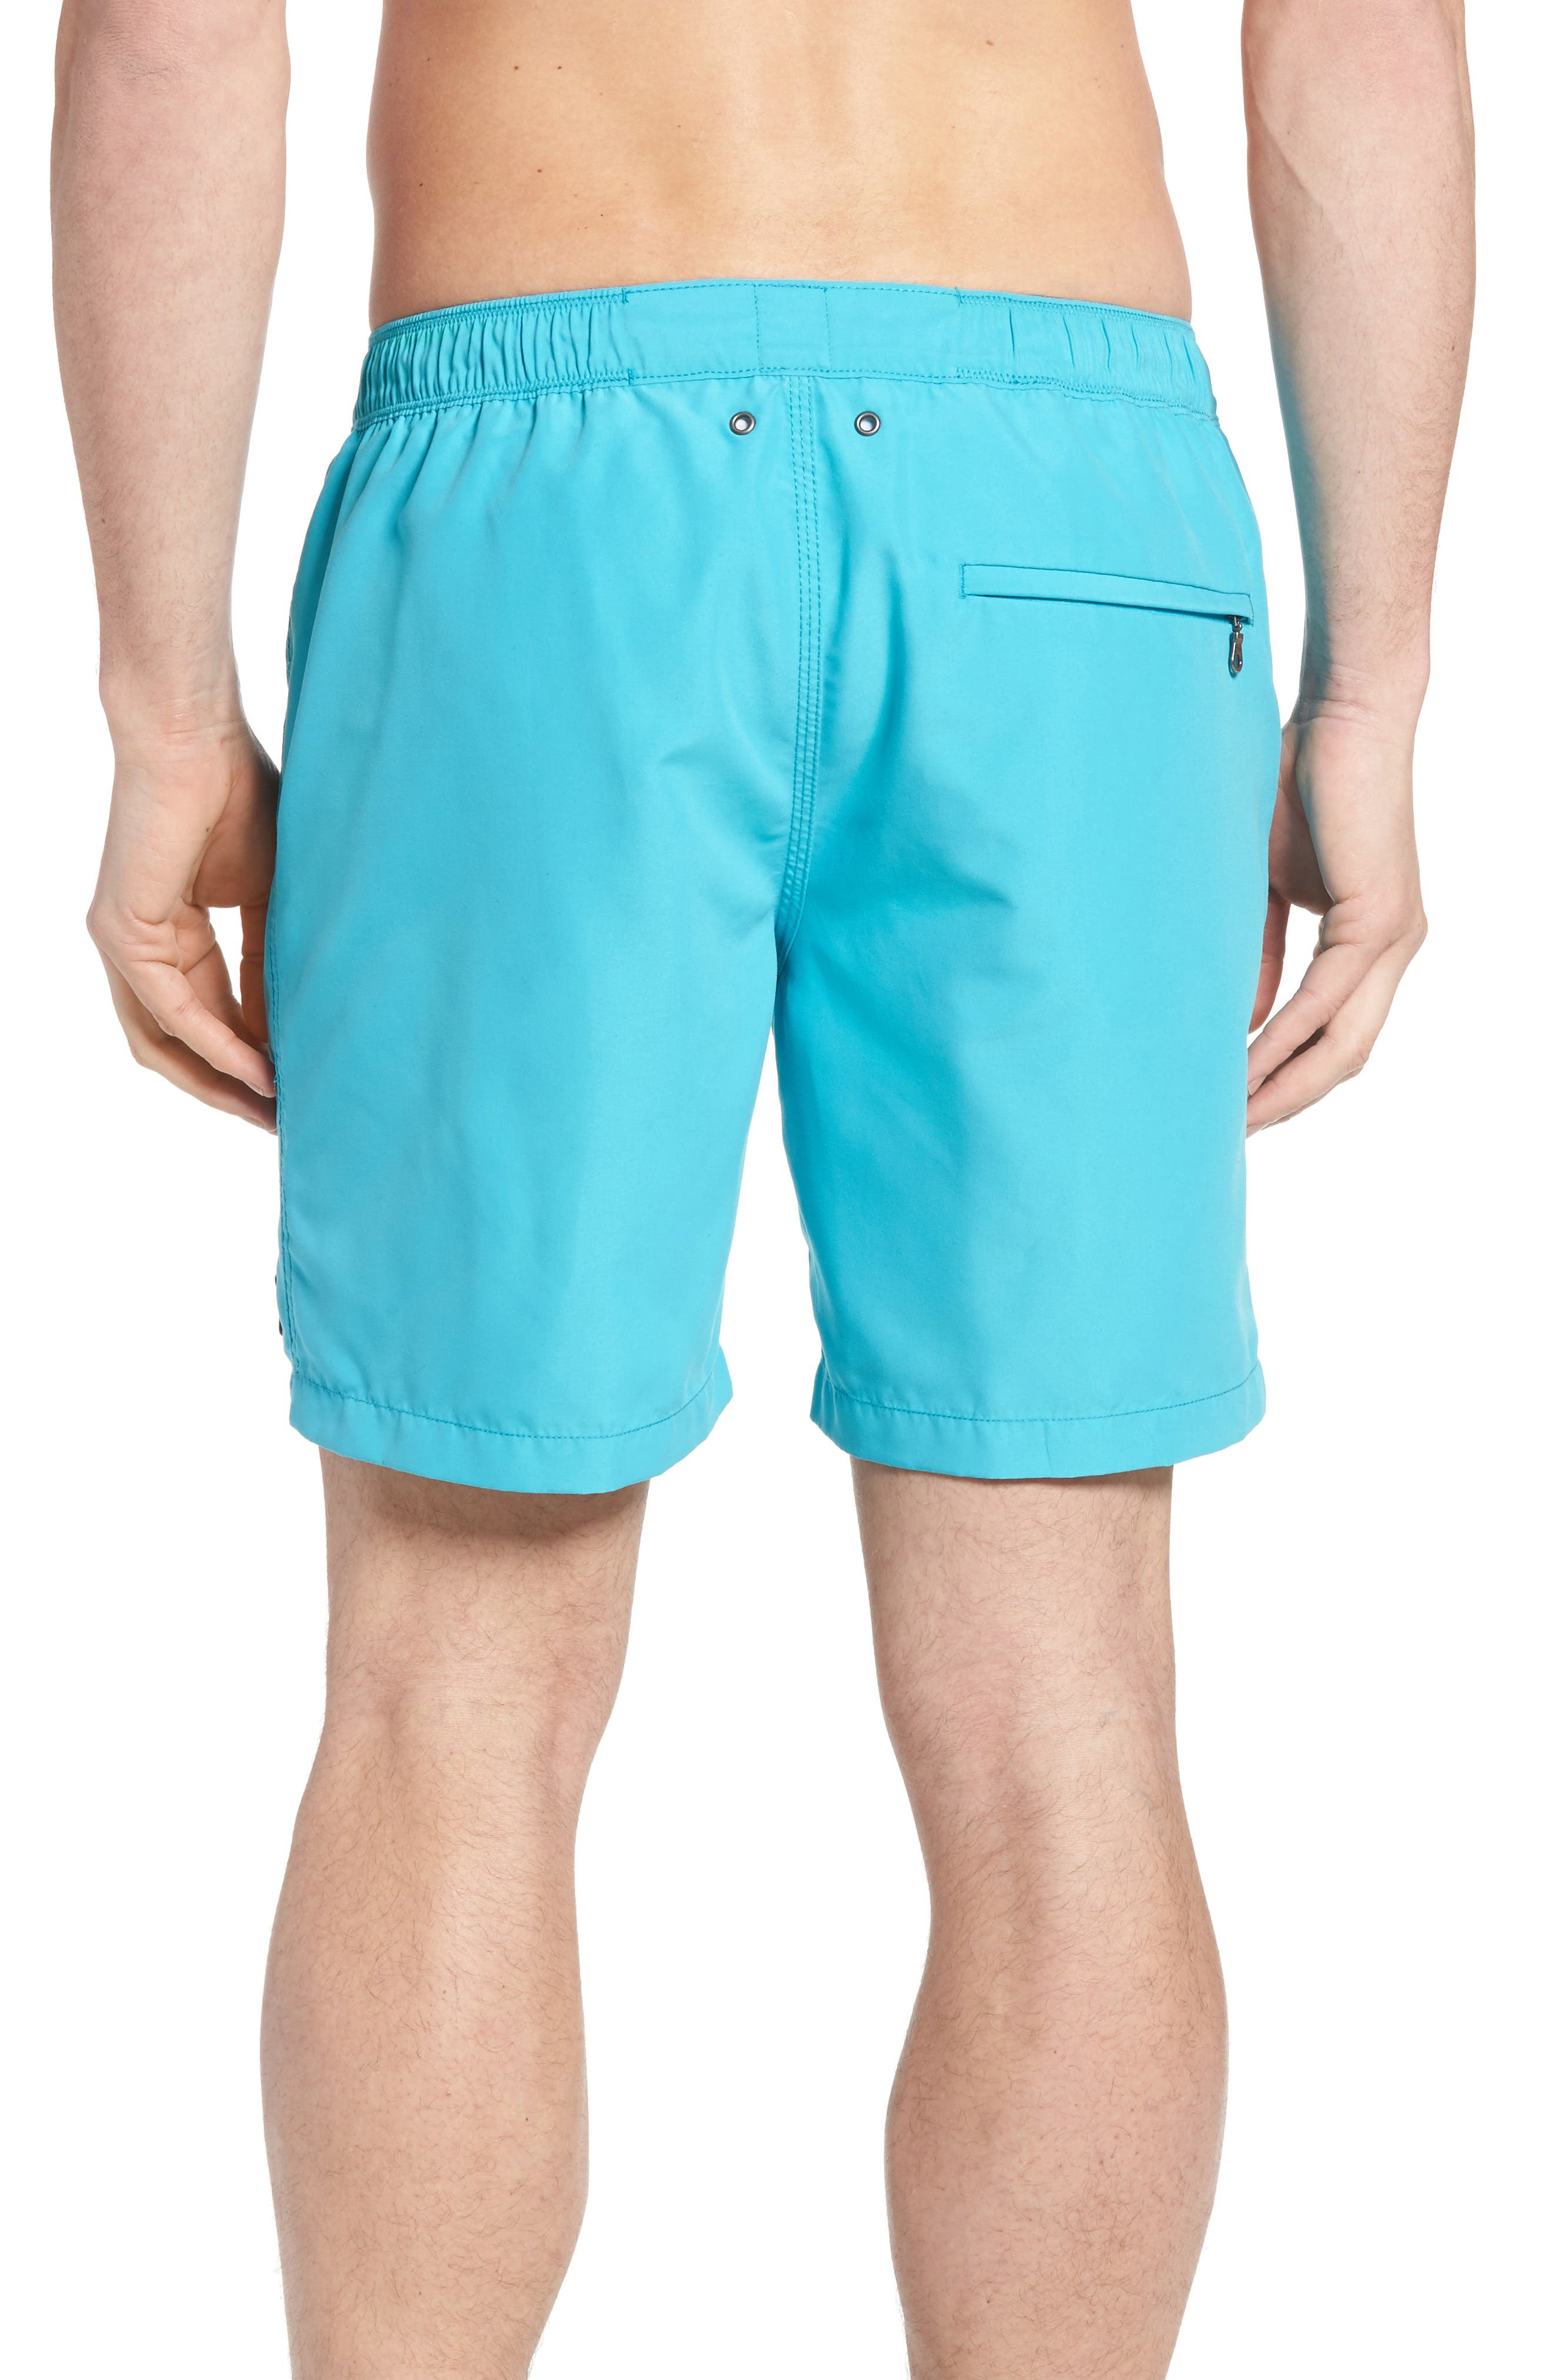 Swim Trunks,                             Alternate thumbnail 2, color,                             430